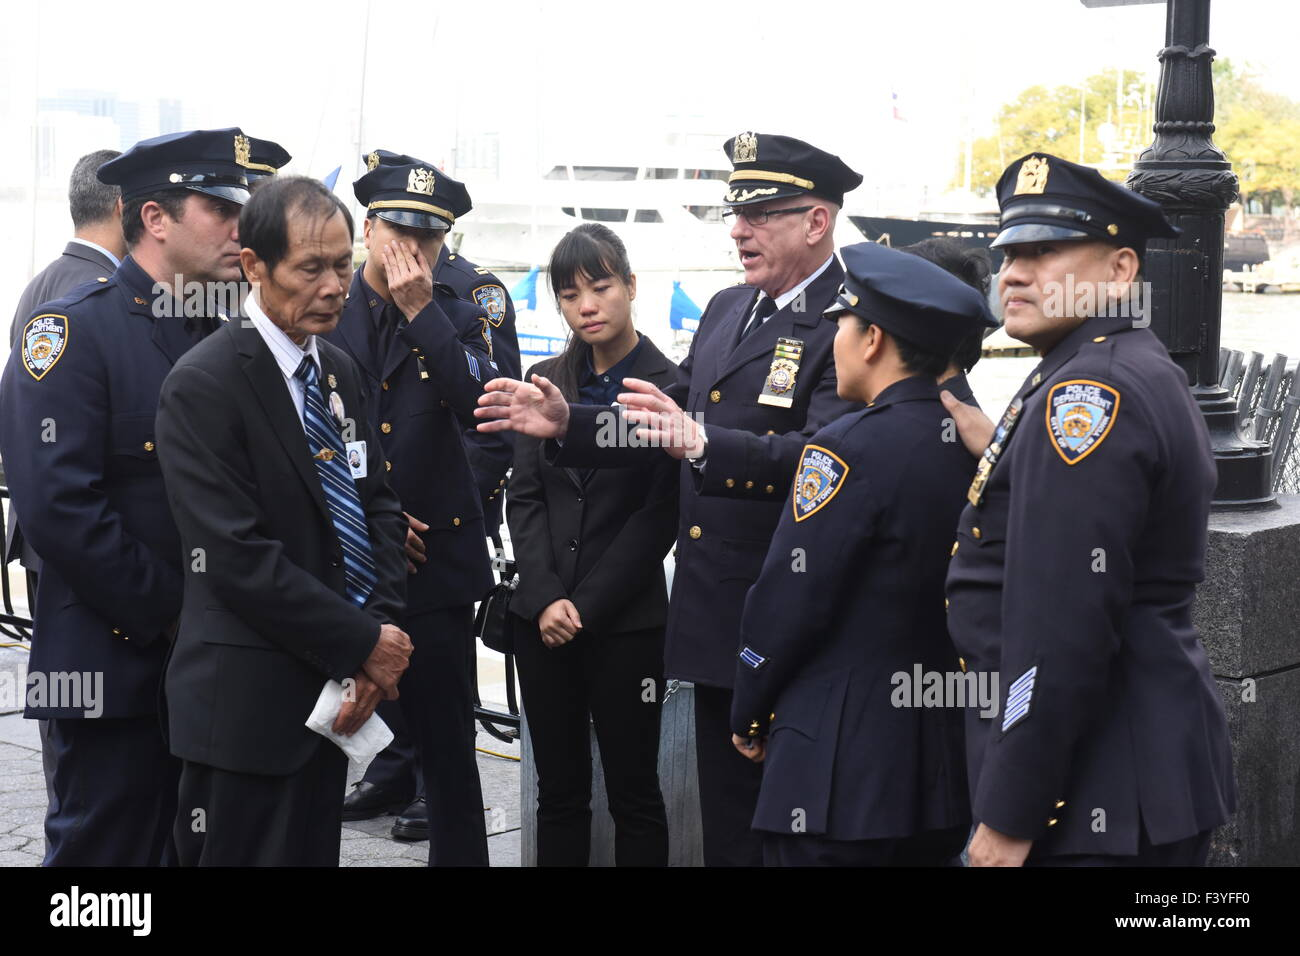 Detective Nypd Stock Photos & Detective Nypd Stock Images